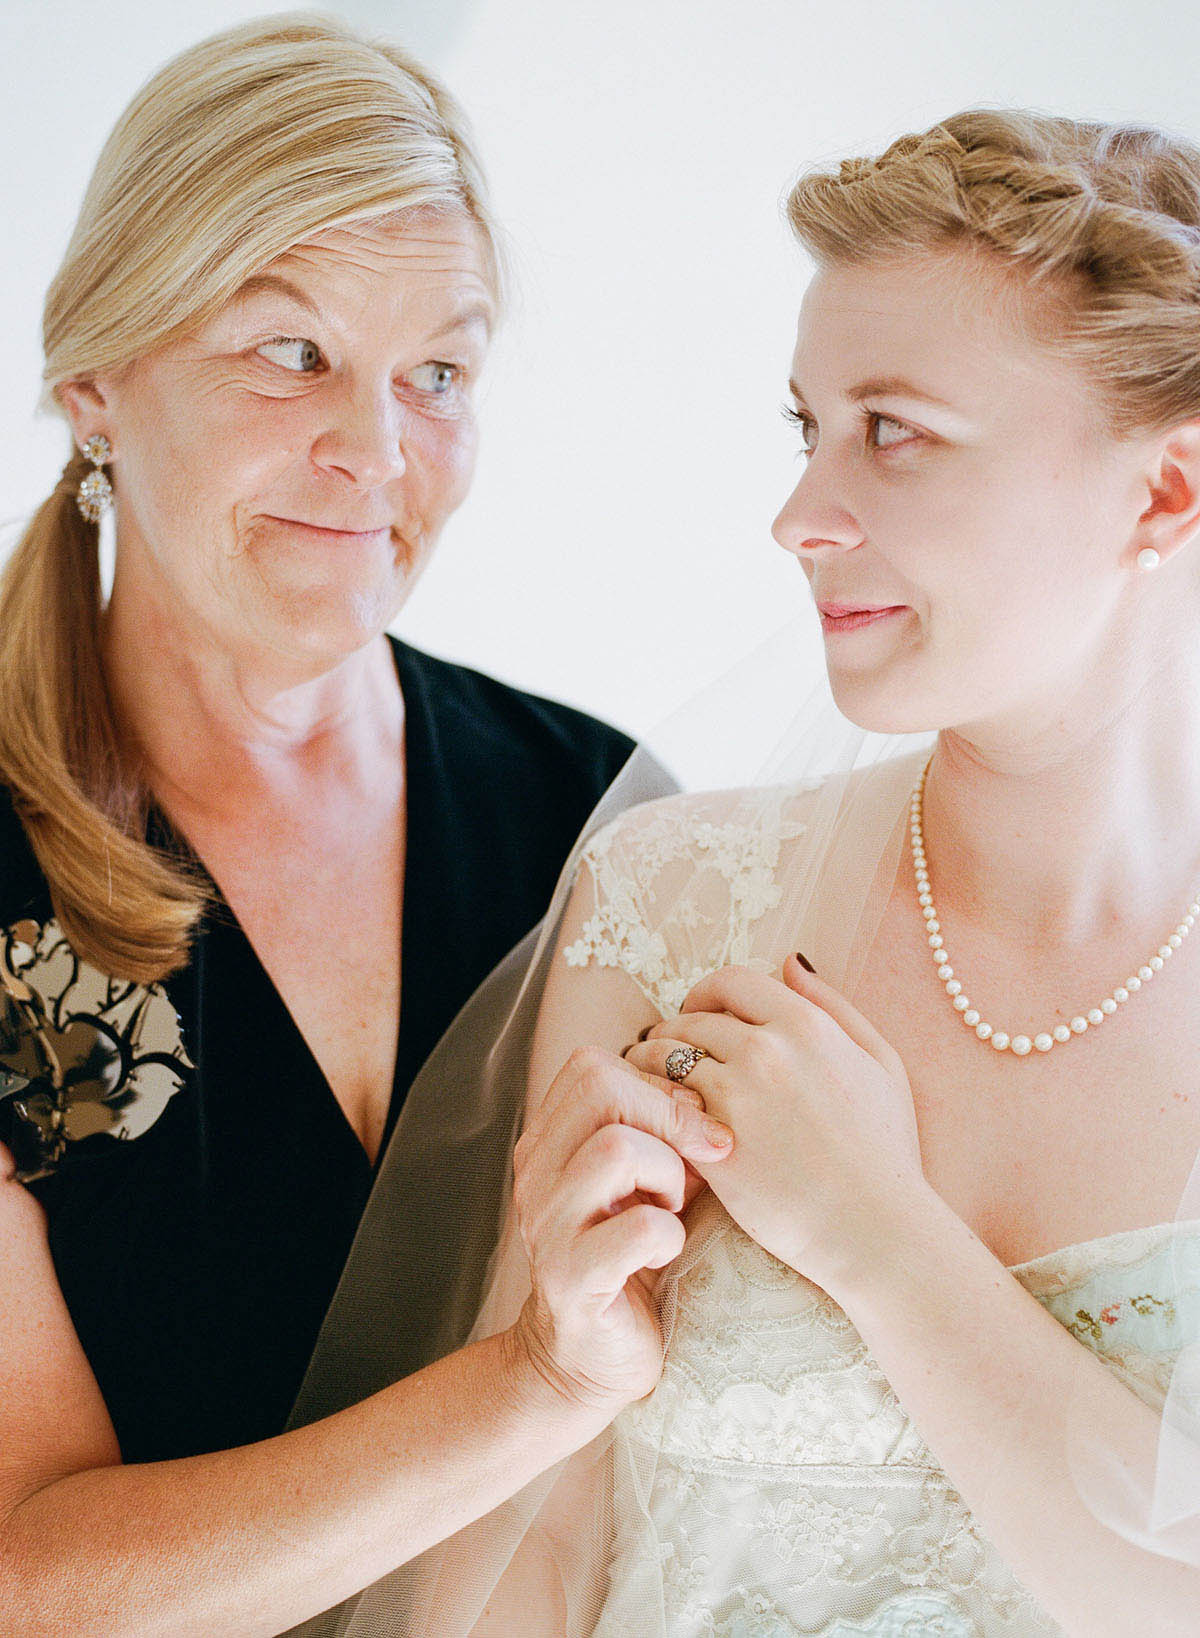 1-mom-daughter-wedding.jpg